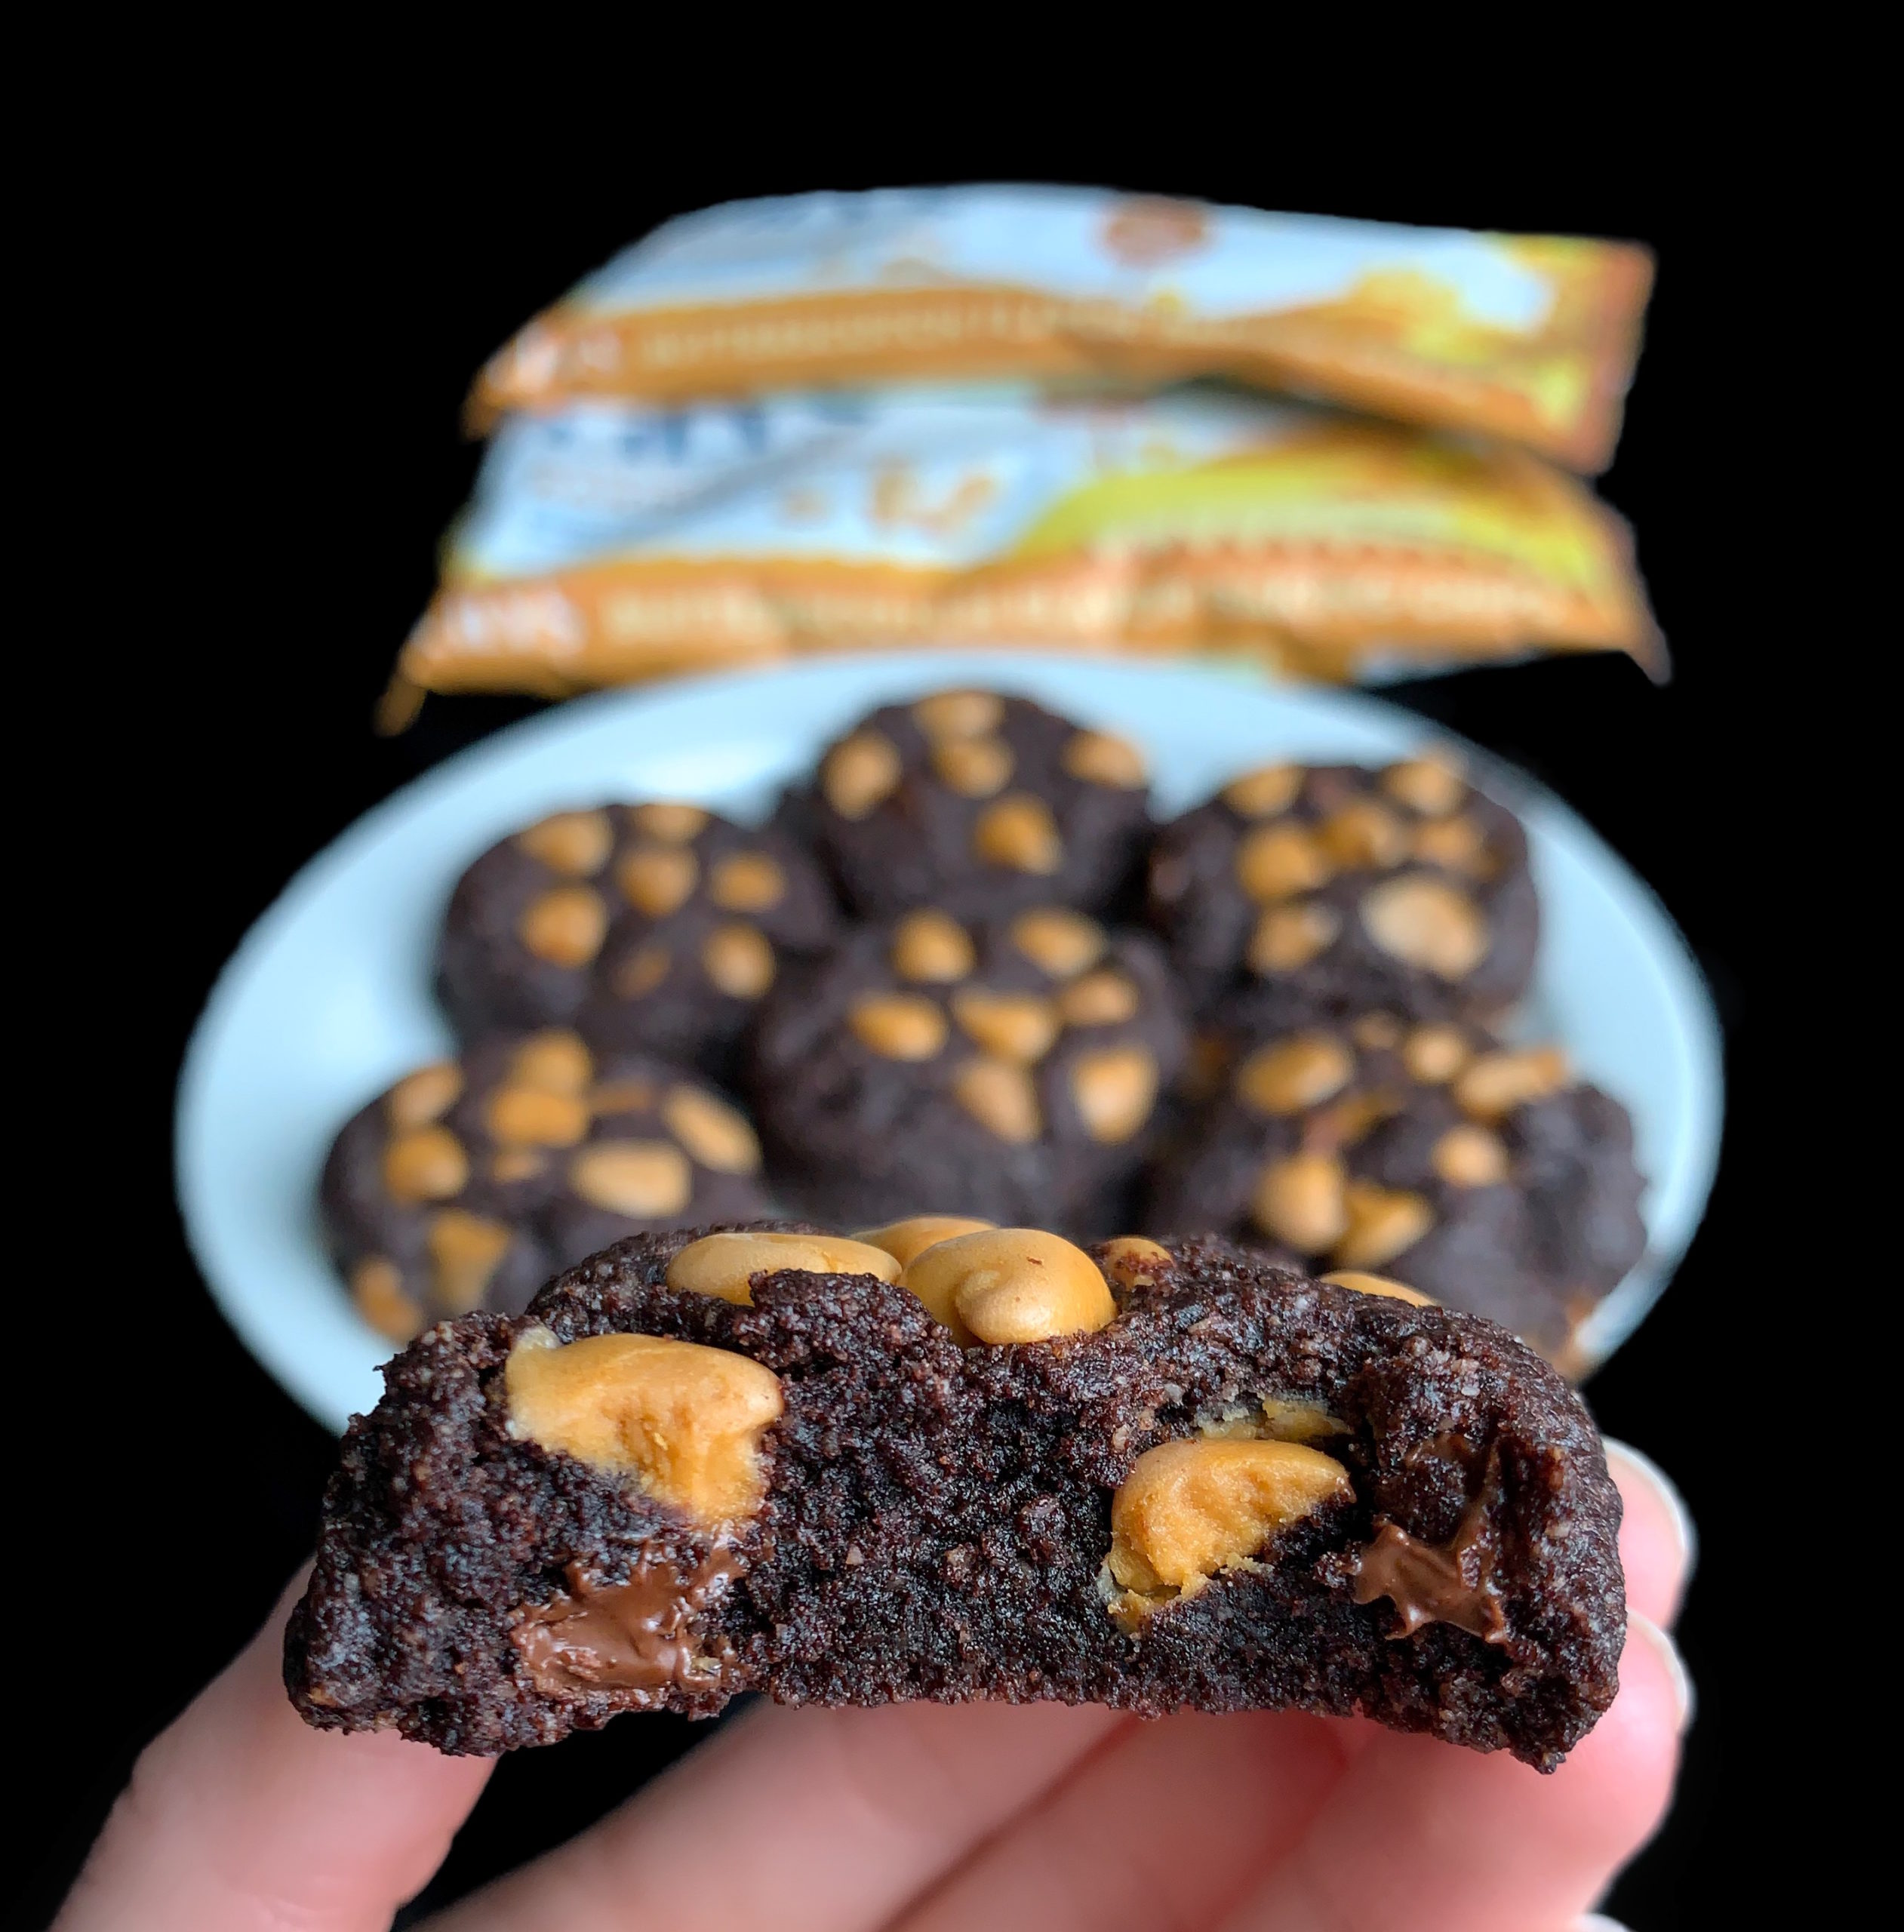 Keto sugar free chocolate butterscotch cookies